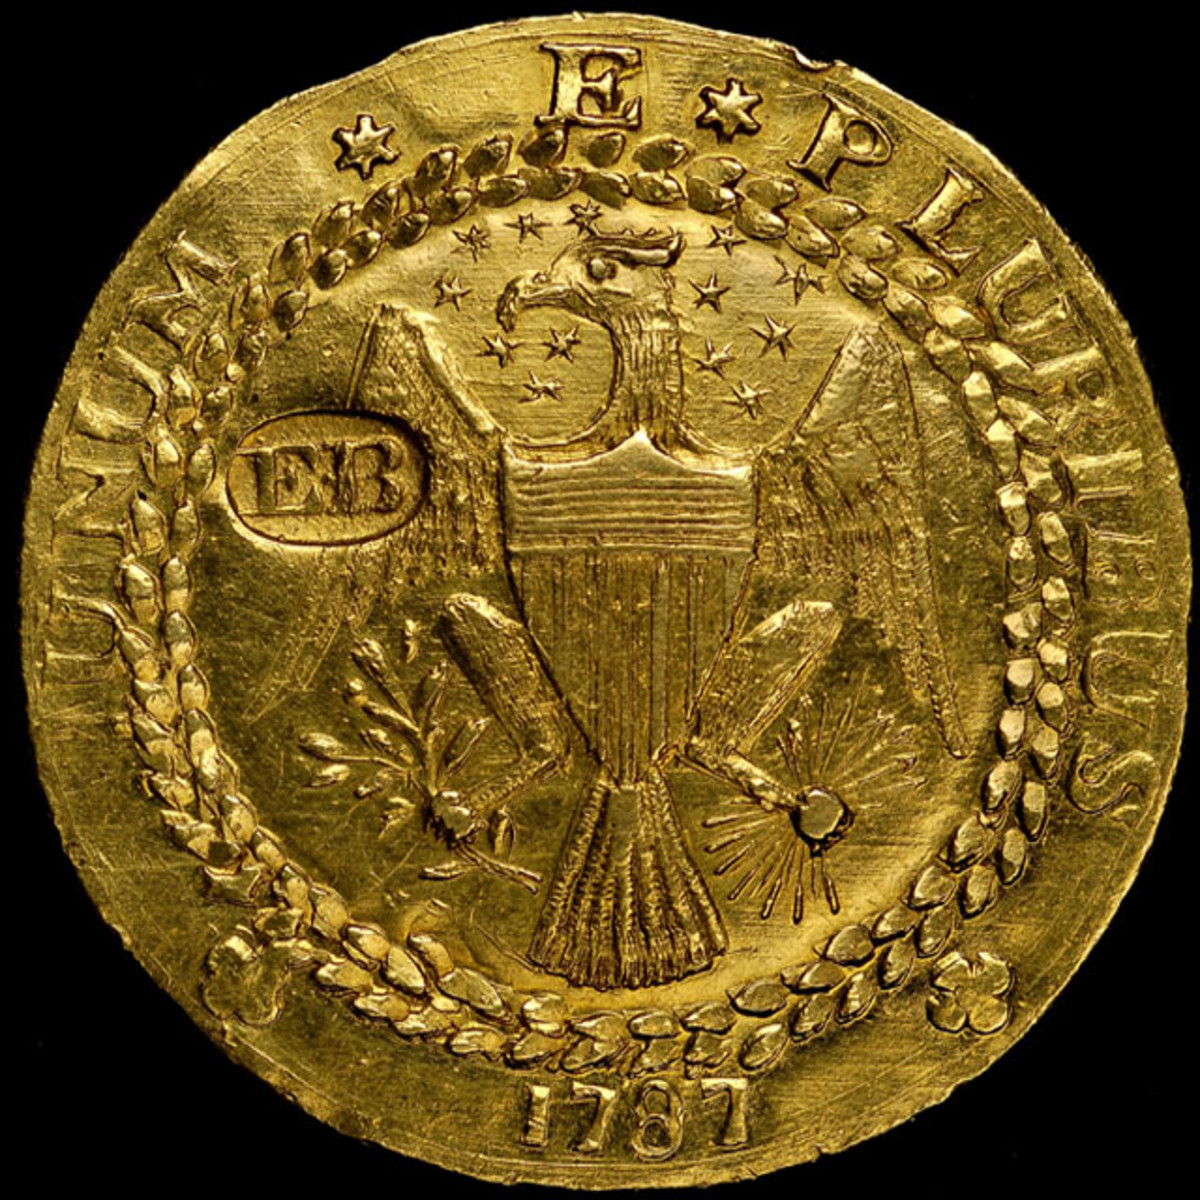 Obverse of the original 1787 Brasher Doubloon